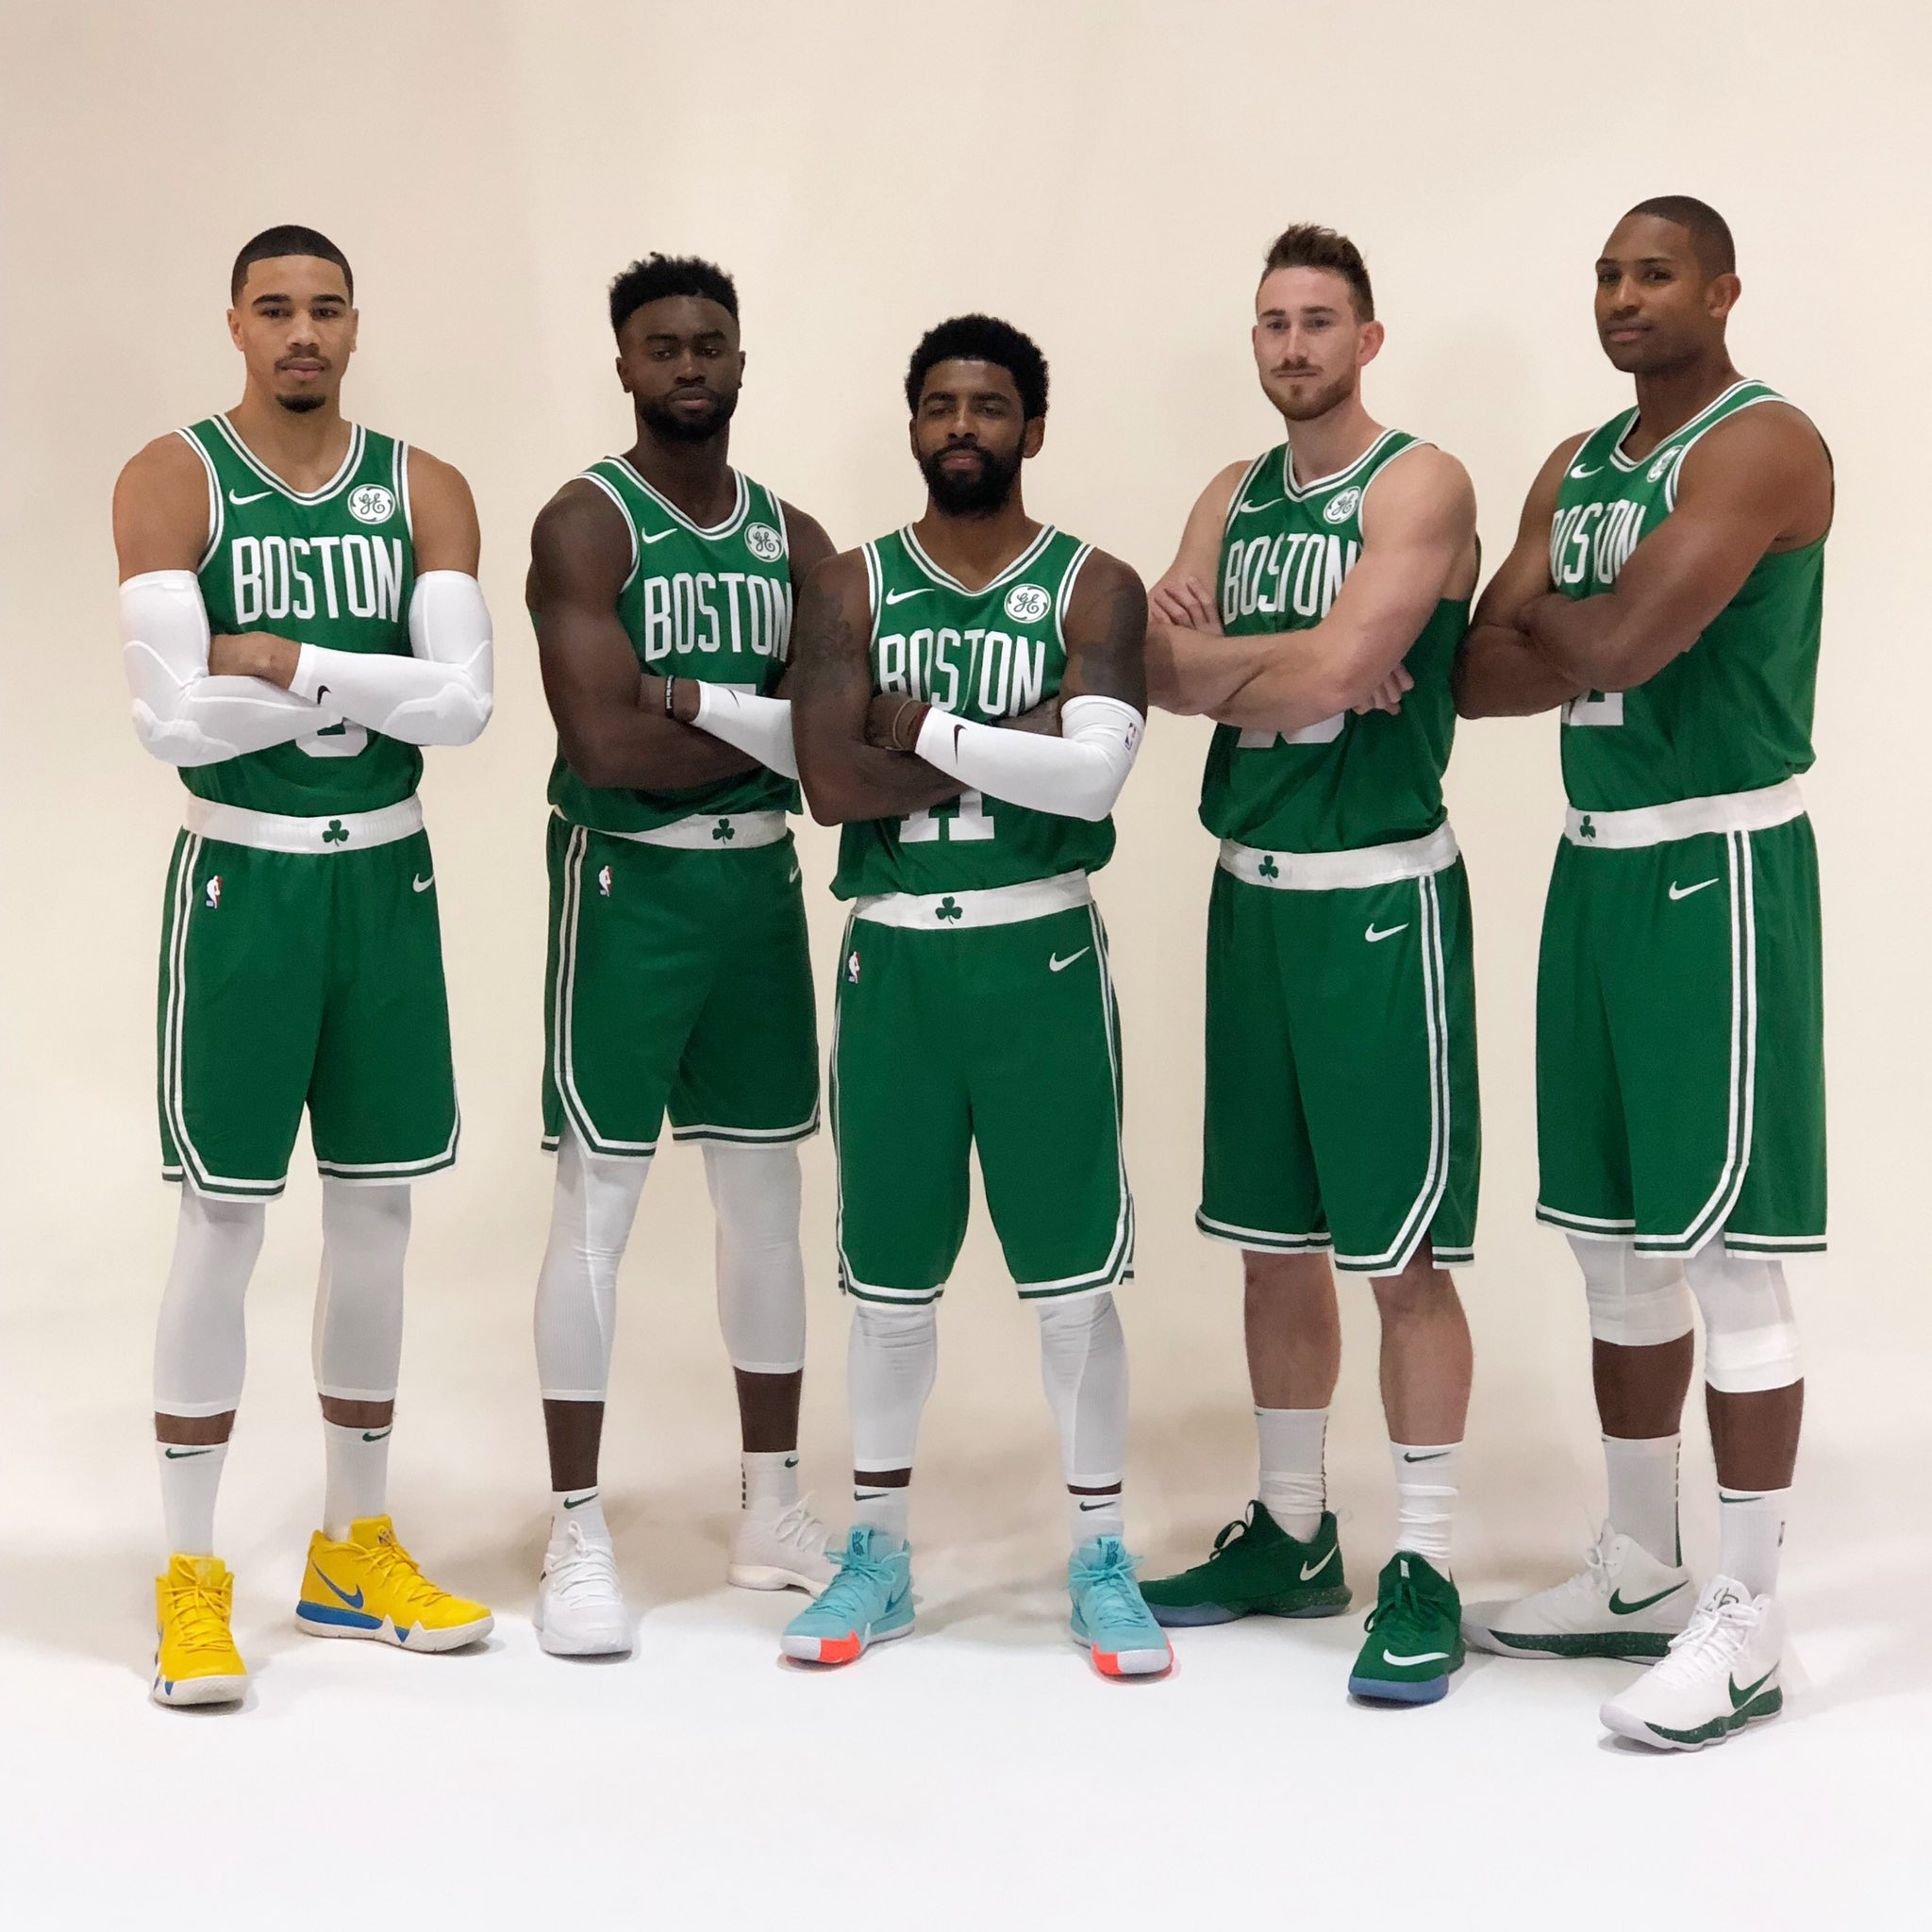 The @celtics are back! #NBAMediaDay https://t.co/bZfWPO8pCC